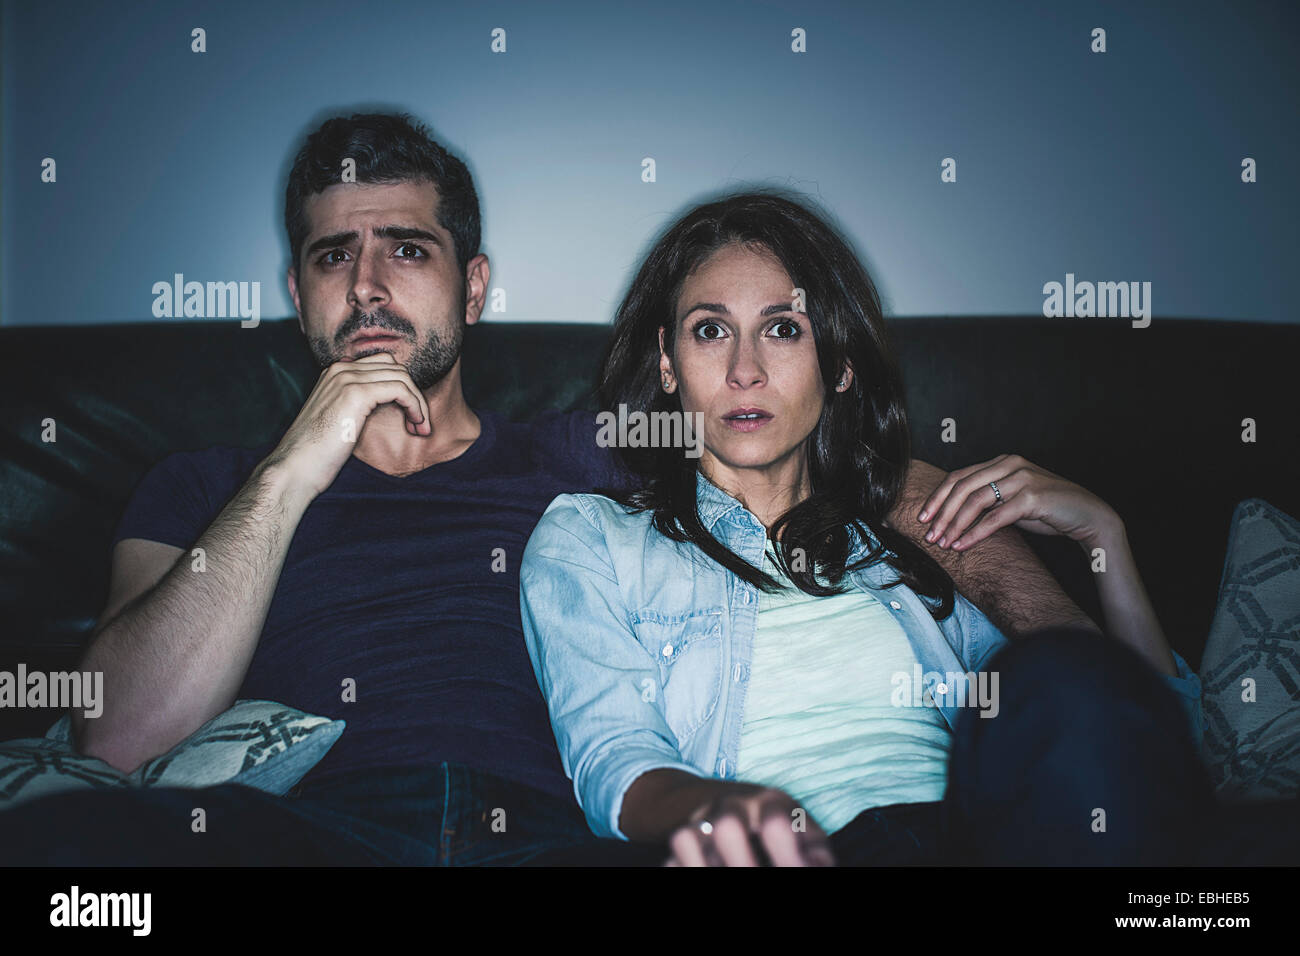 Couple watching thriller sur canapé Photo Stock